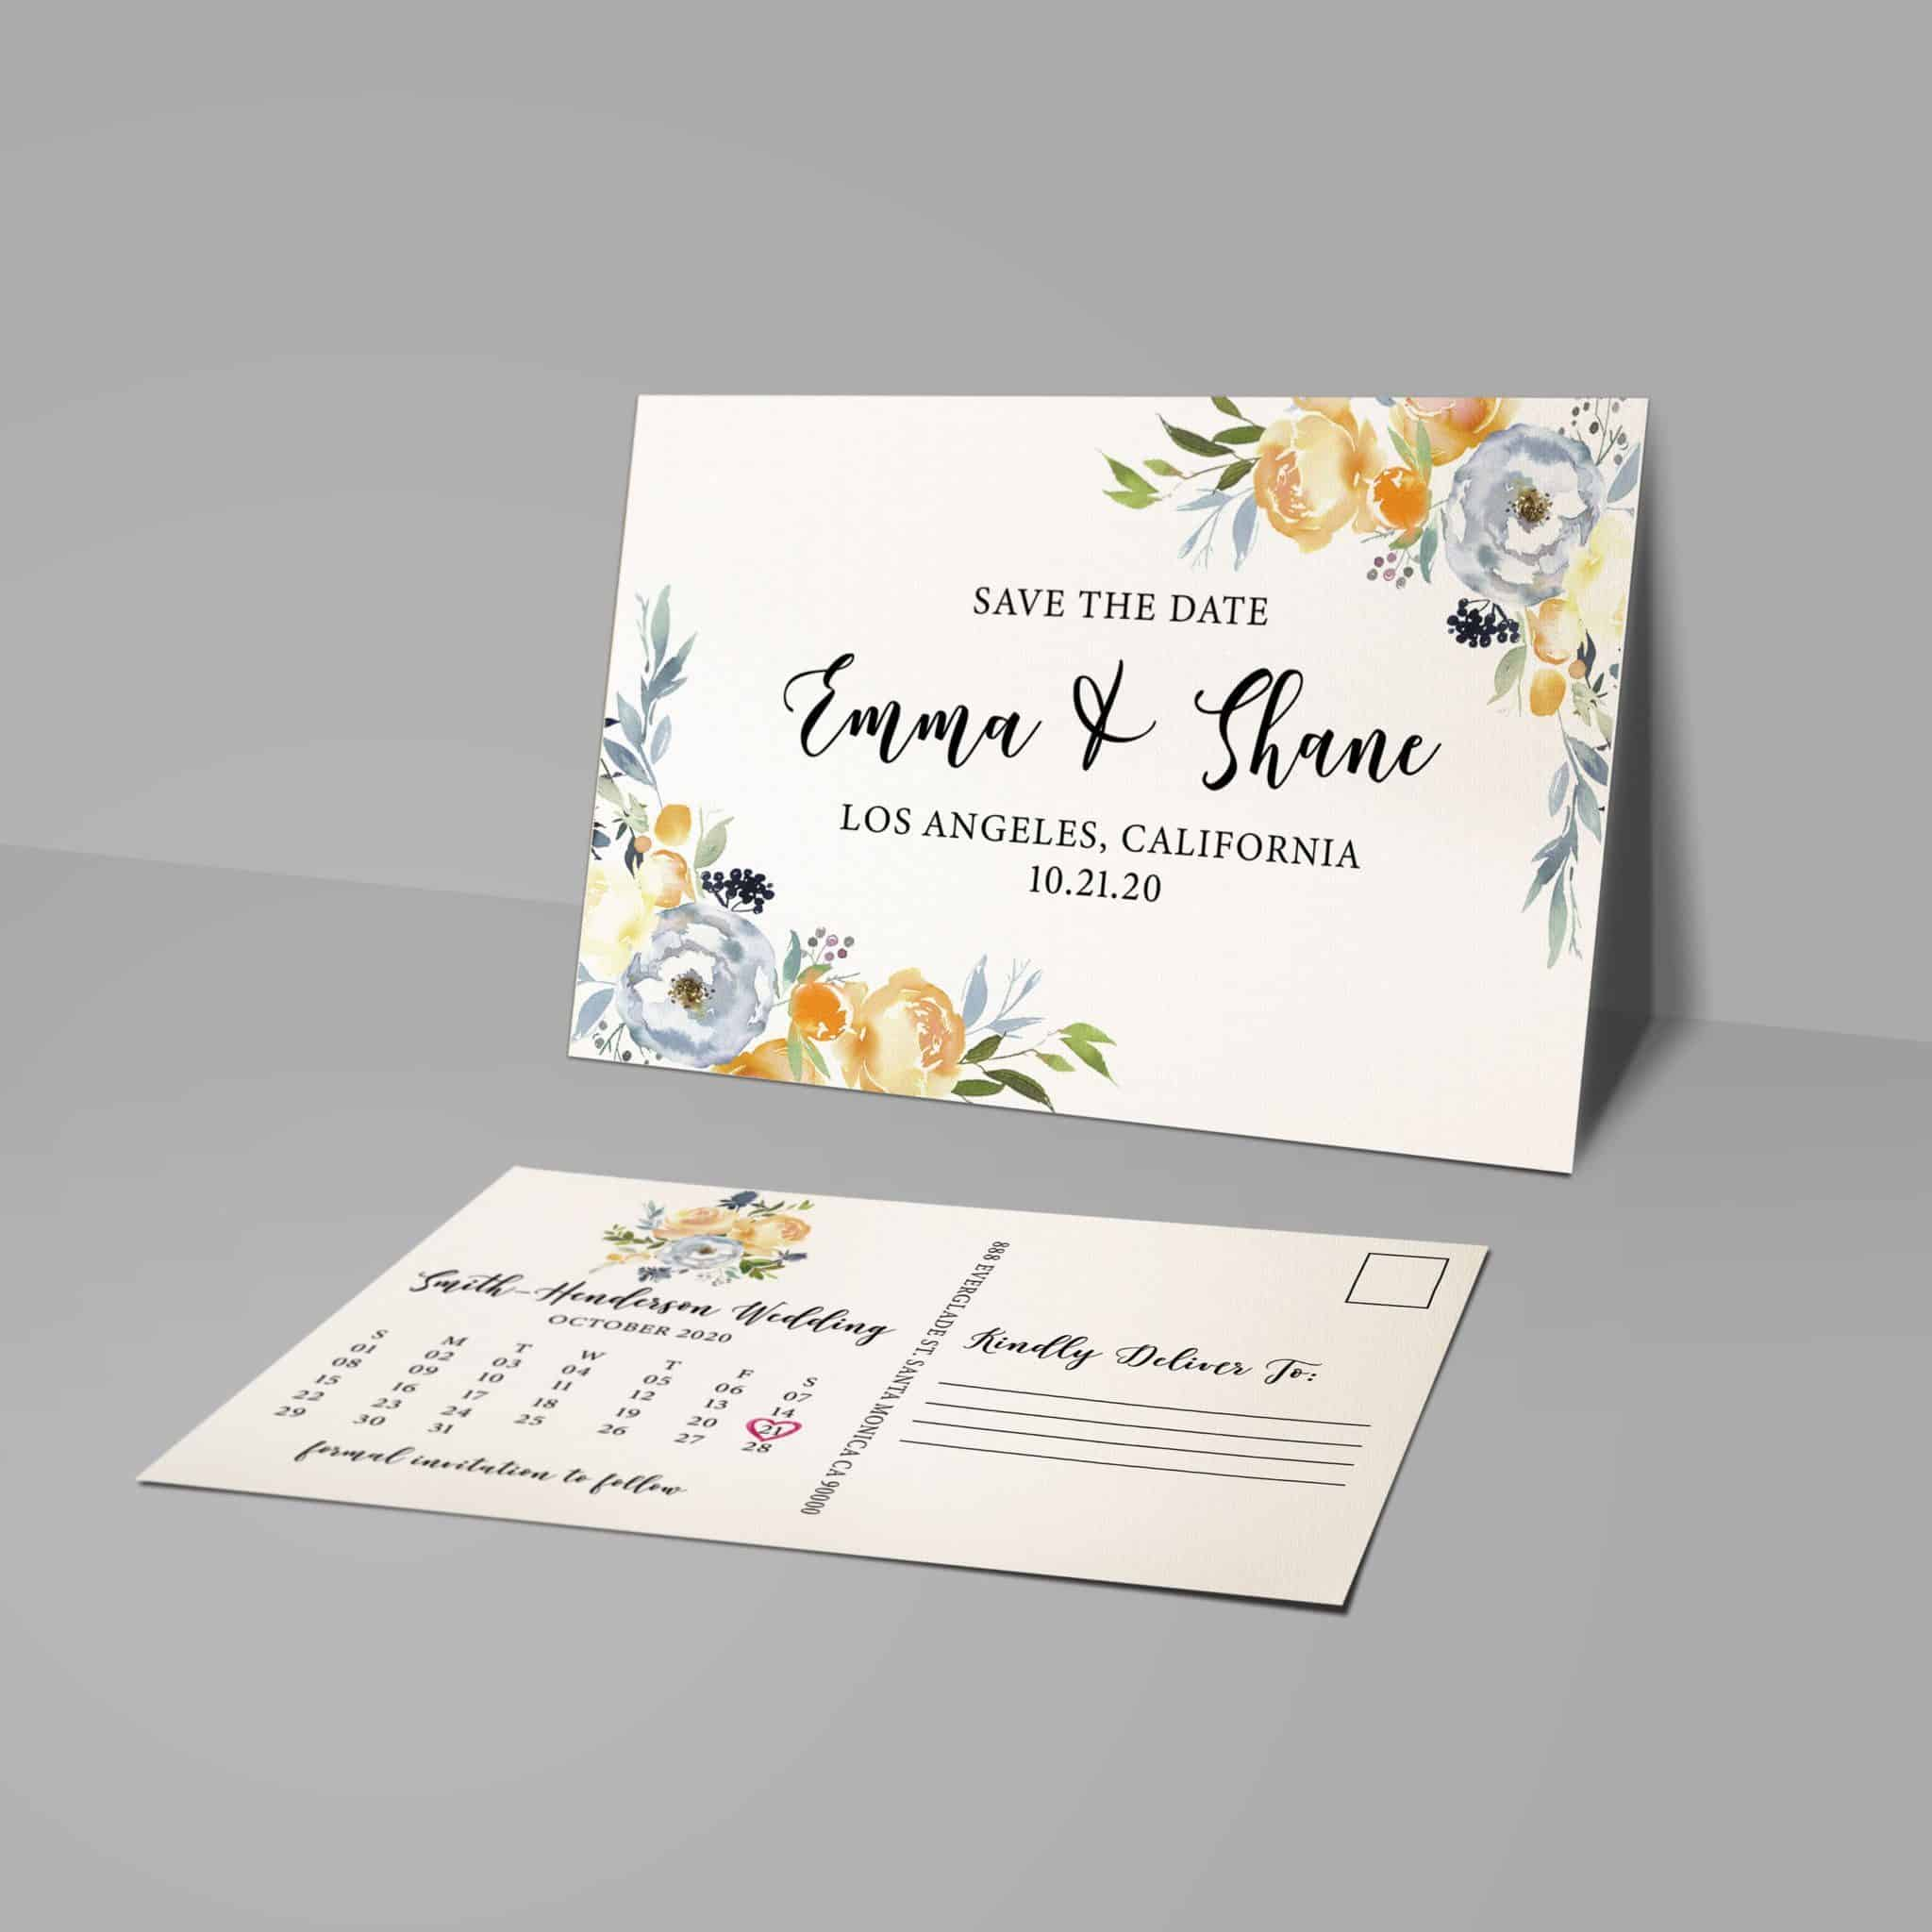 Floral Border Save the Dates, Wedding Save the Date Postcards, Announcement for Family Save the Date Cards, Calendar Save the Date